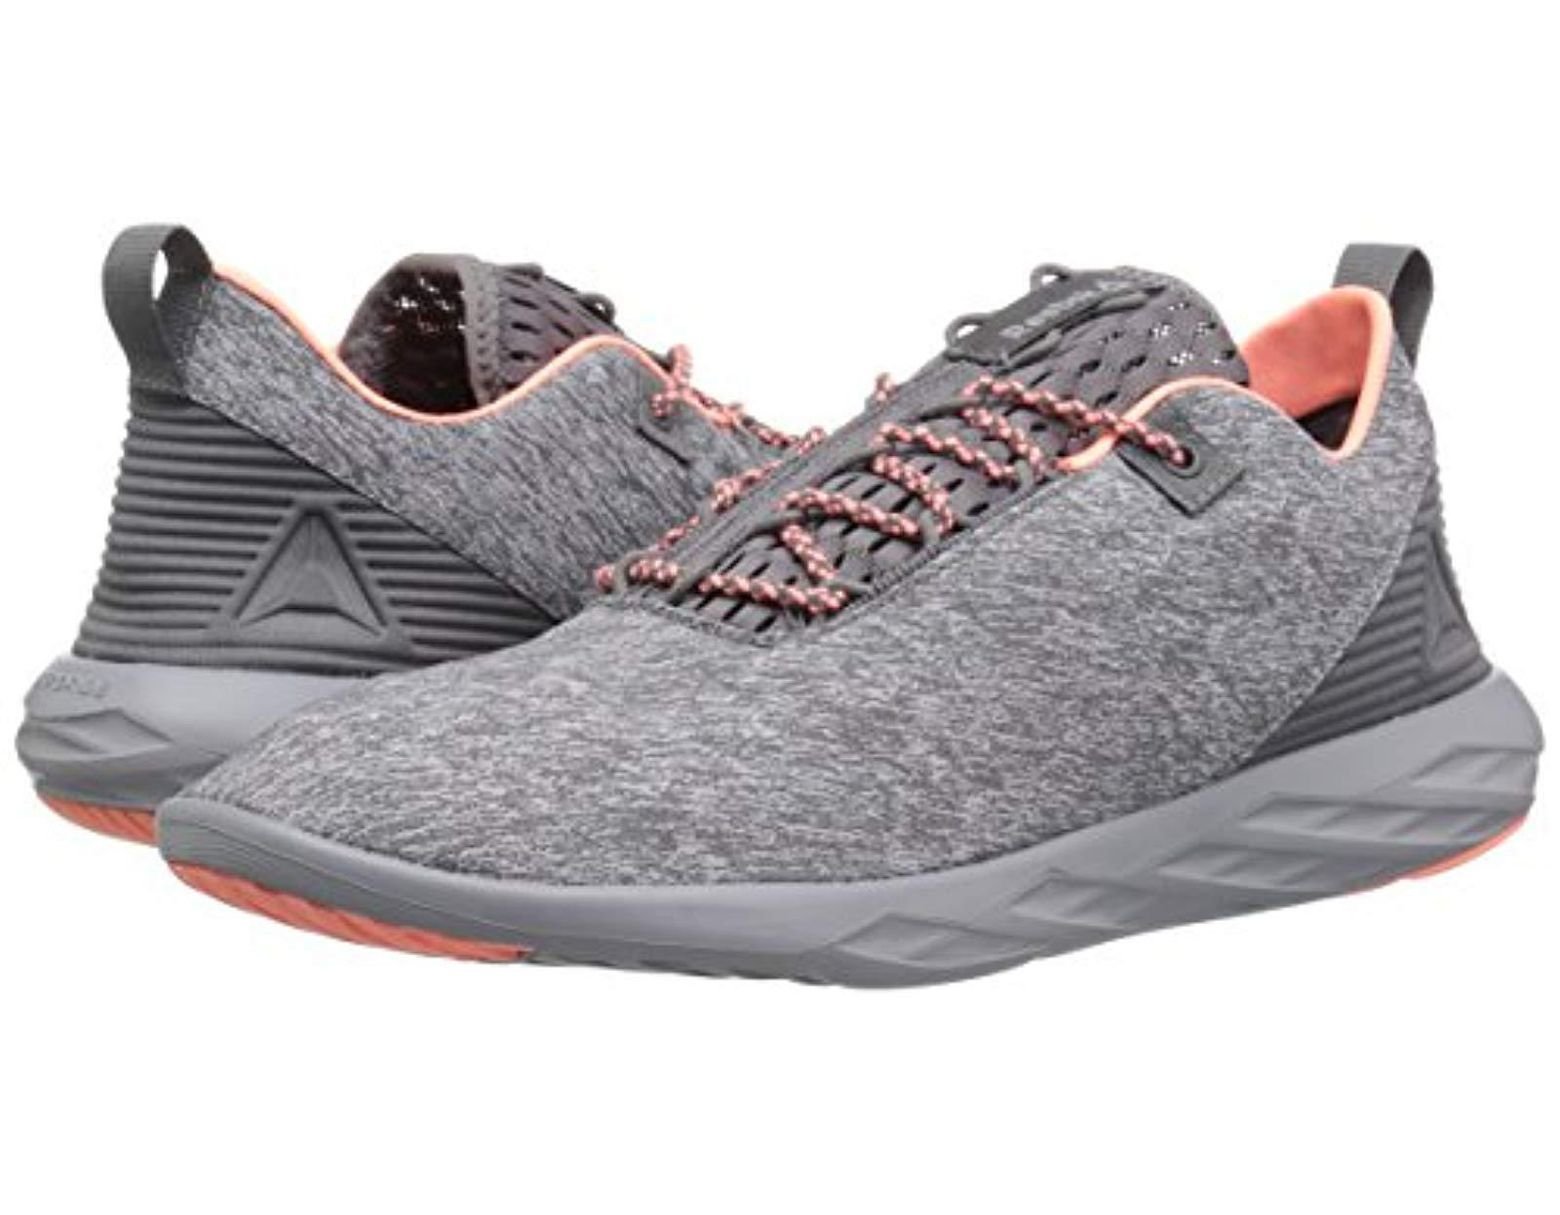 30f1c64d8 Reebok Astro Flex & Fold Walking Shoe in Gray - Lyst